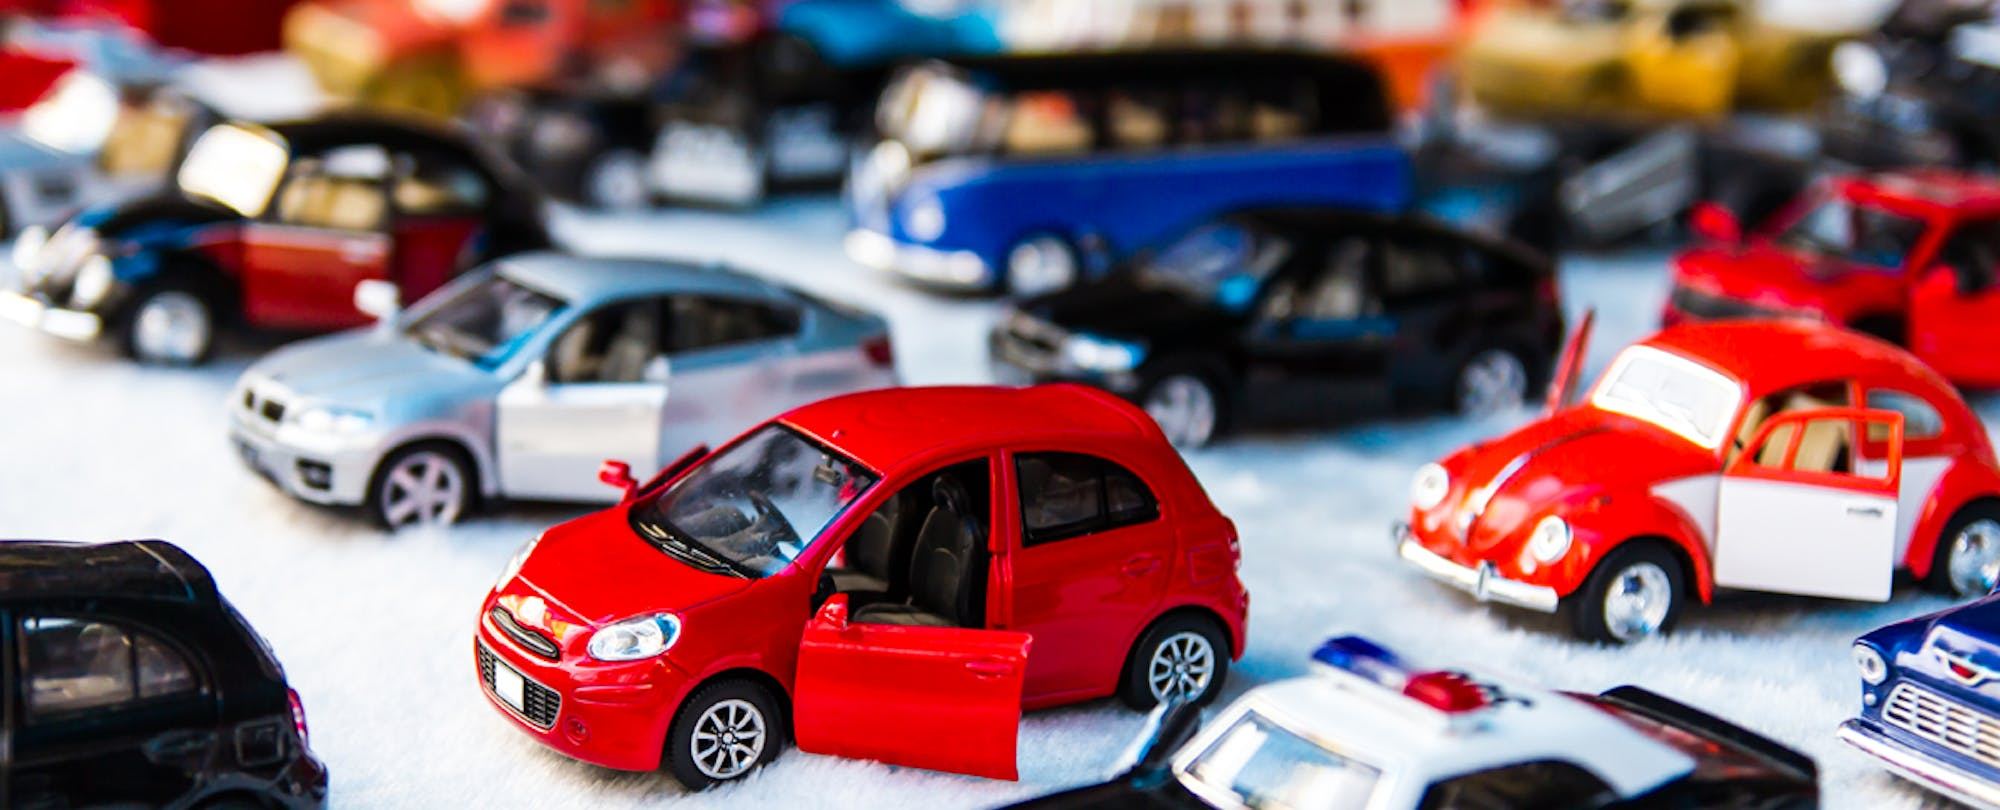 Is Your School Toyota or General Motors? Creating a Culture of Proactiveness